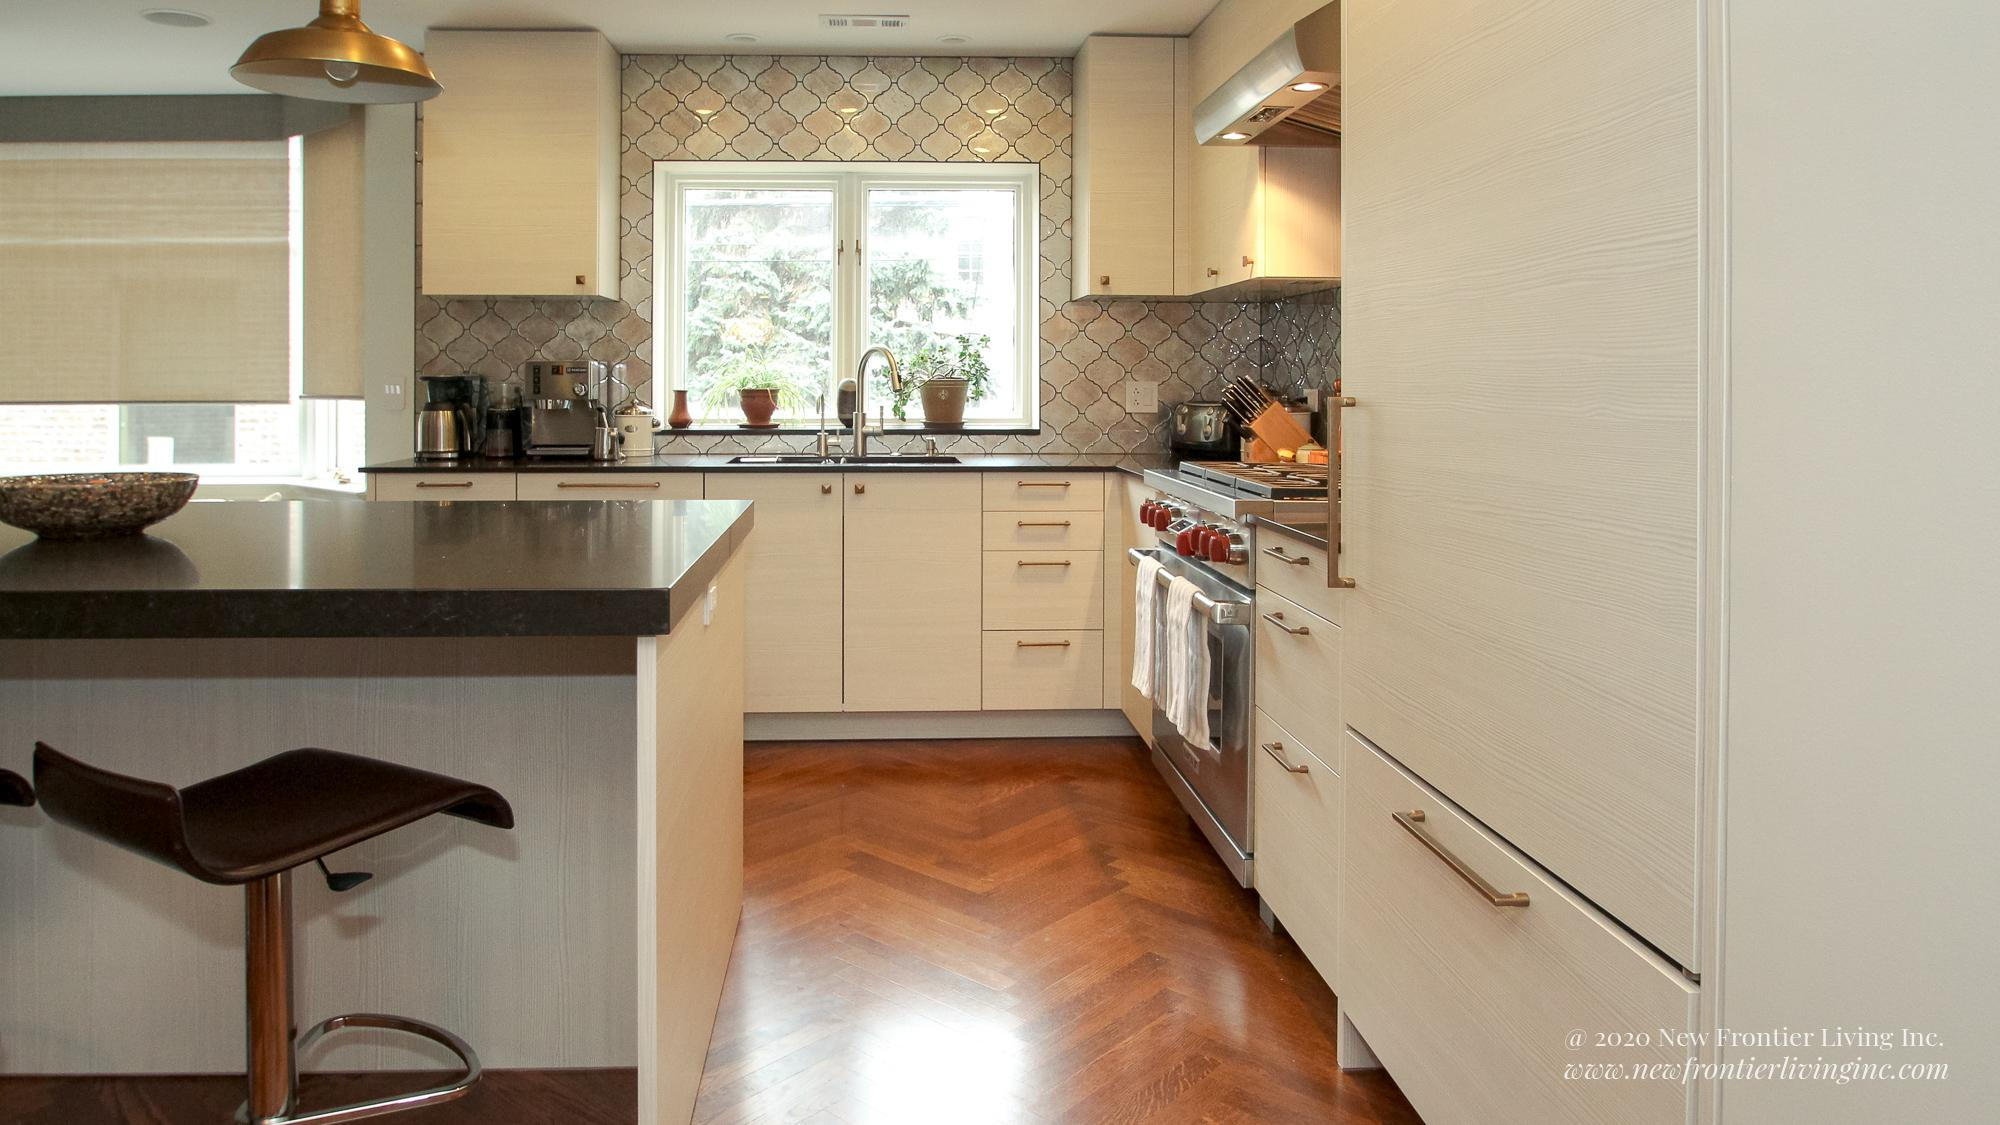 Cream kitchen bottom cabinets and wooden floor flowers in the kitchen windows and small appliances on the counter